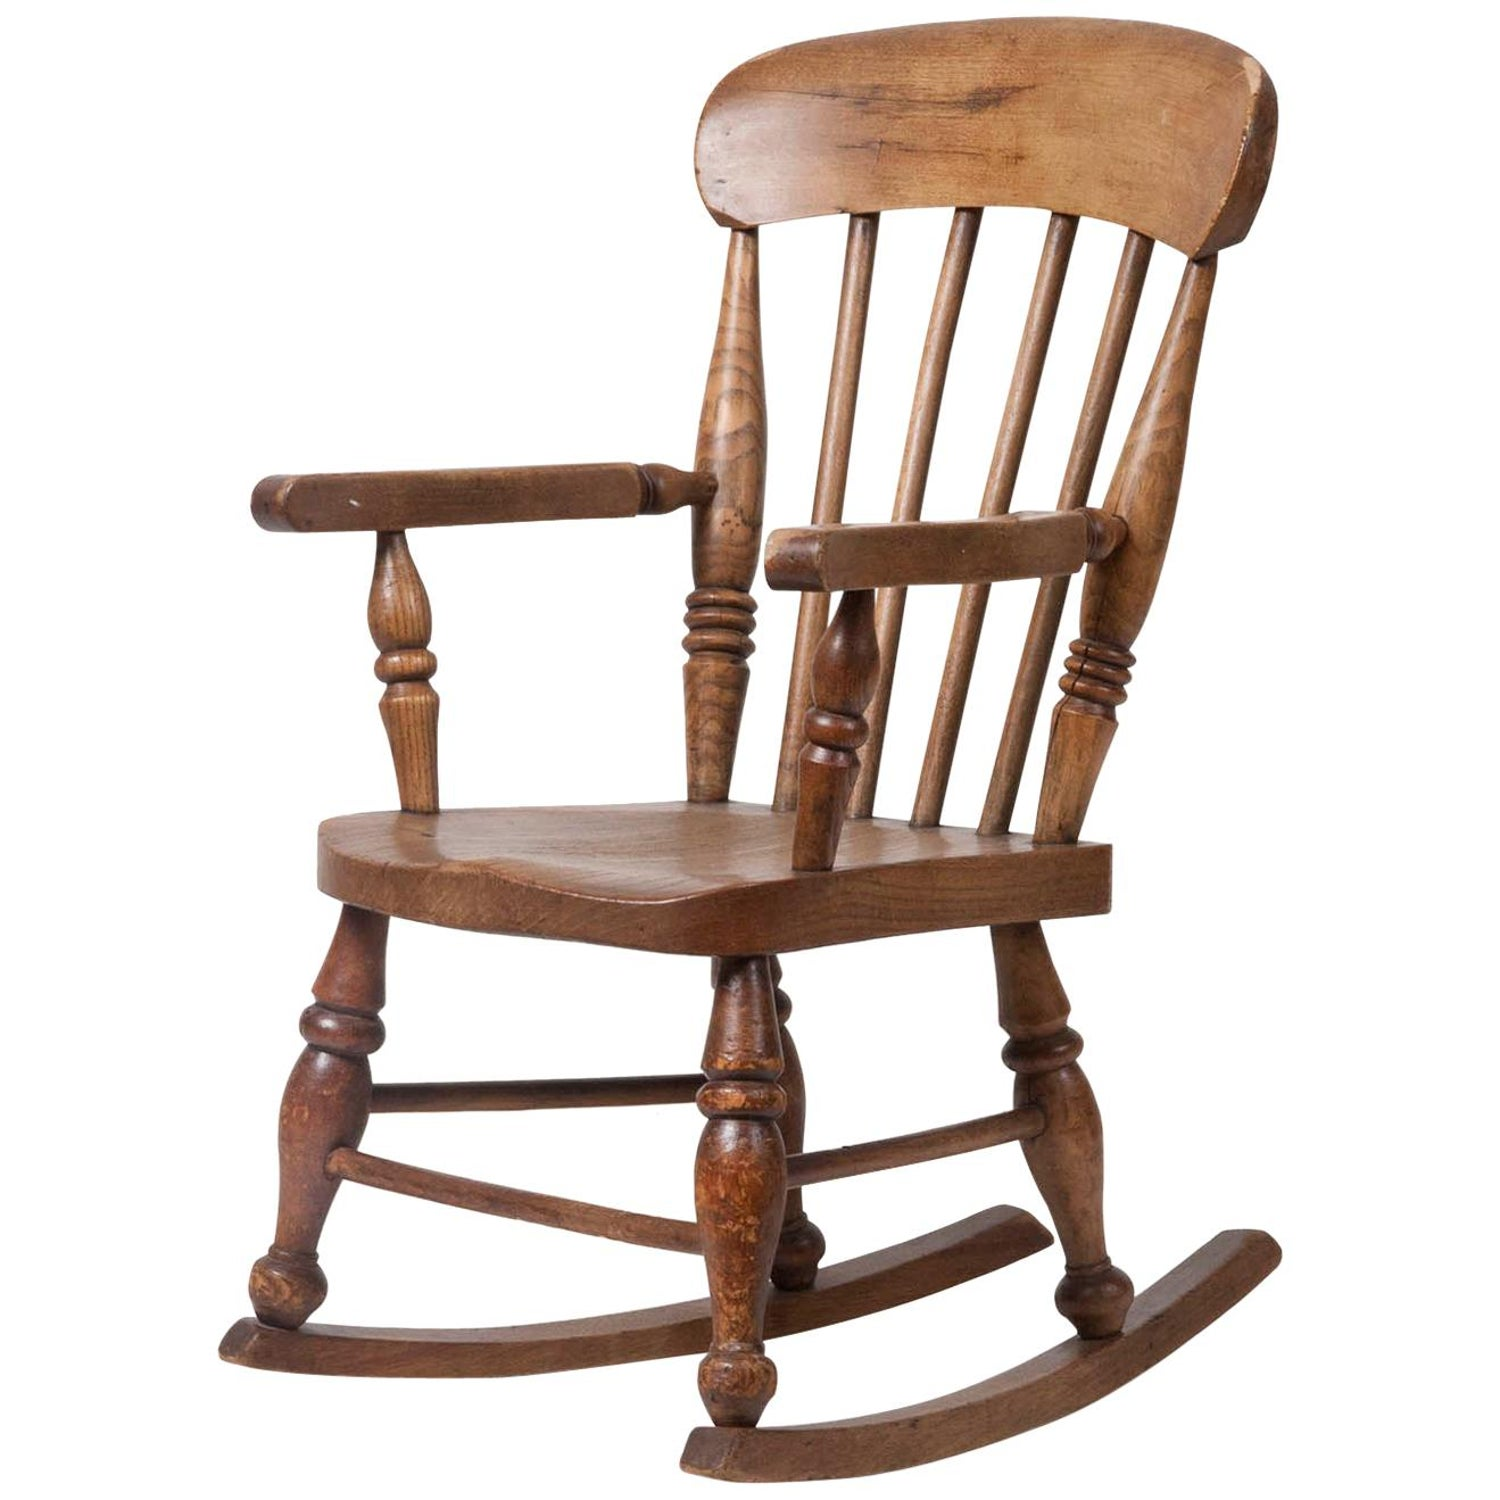 Outstanding 19Th Century Rocking Chairs 78 For Sale At 1Stdibs Forskolin Free Trial Chair Design Images Forskolin Free Trialorg